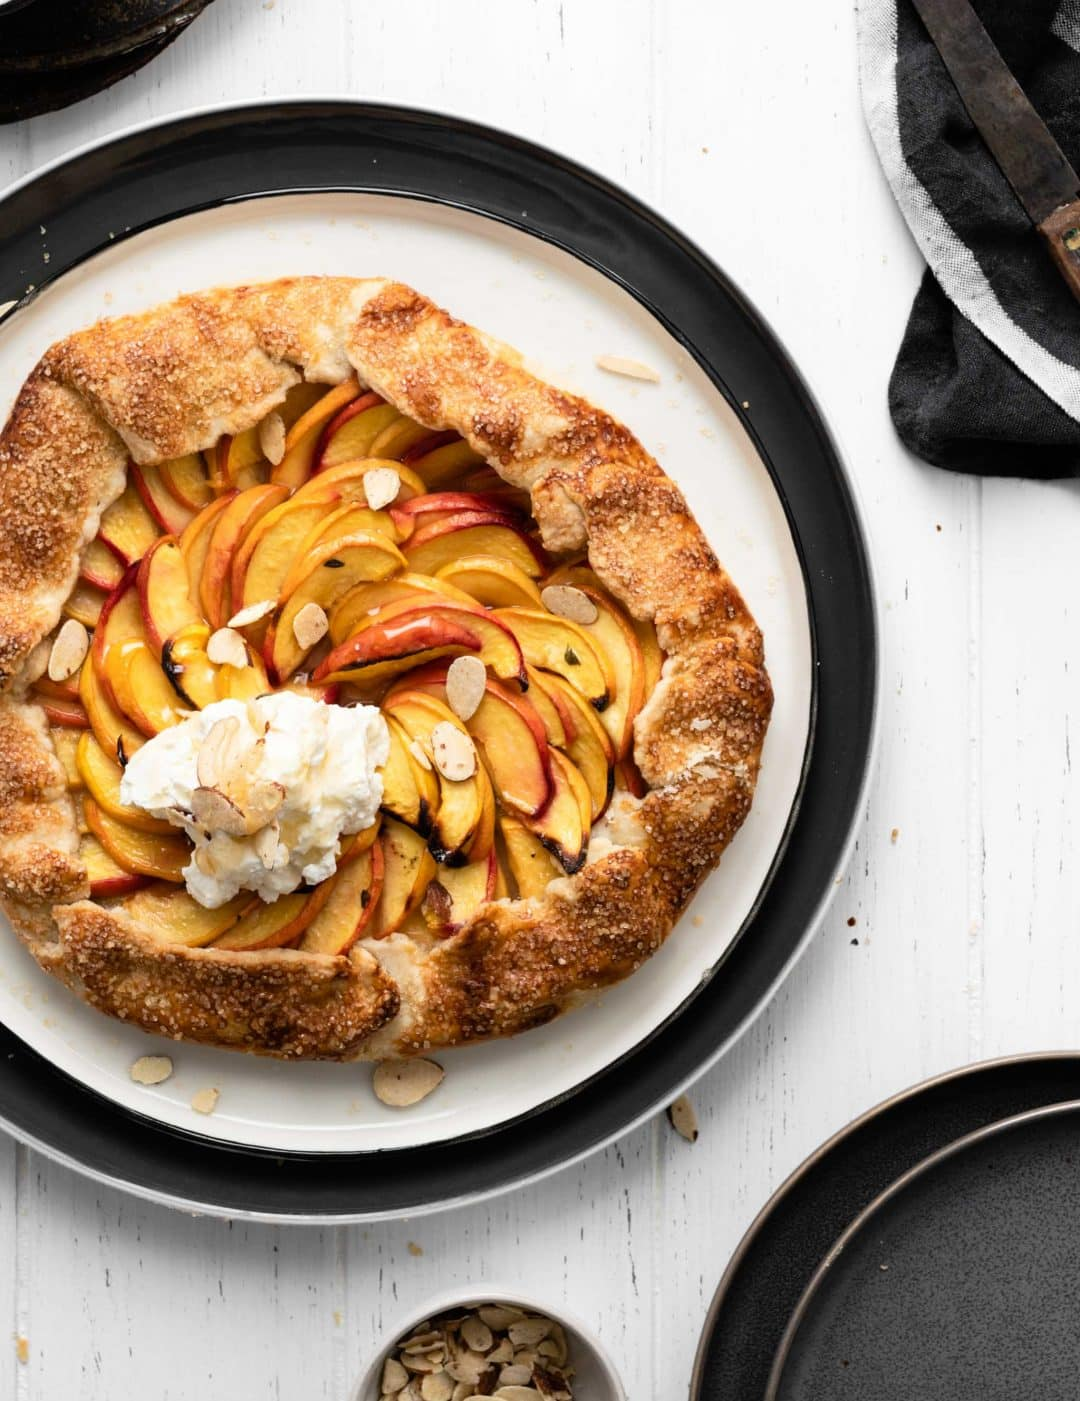 baked lemon thyme peach galette with cream and almonds